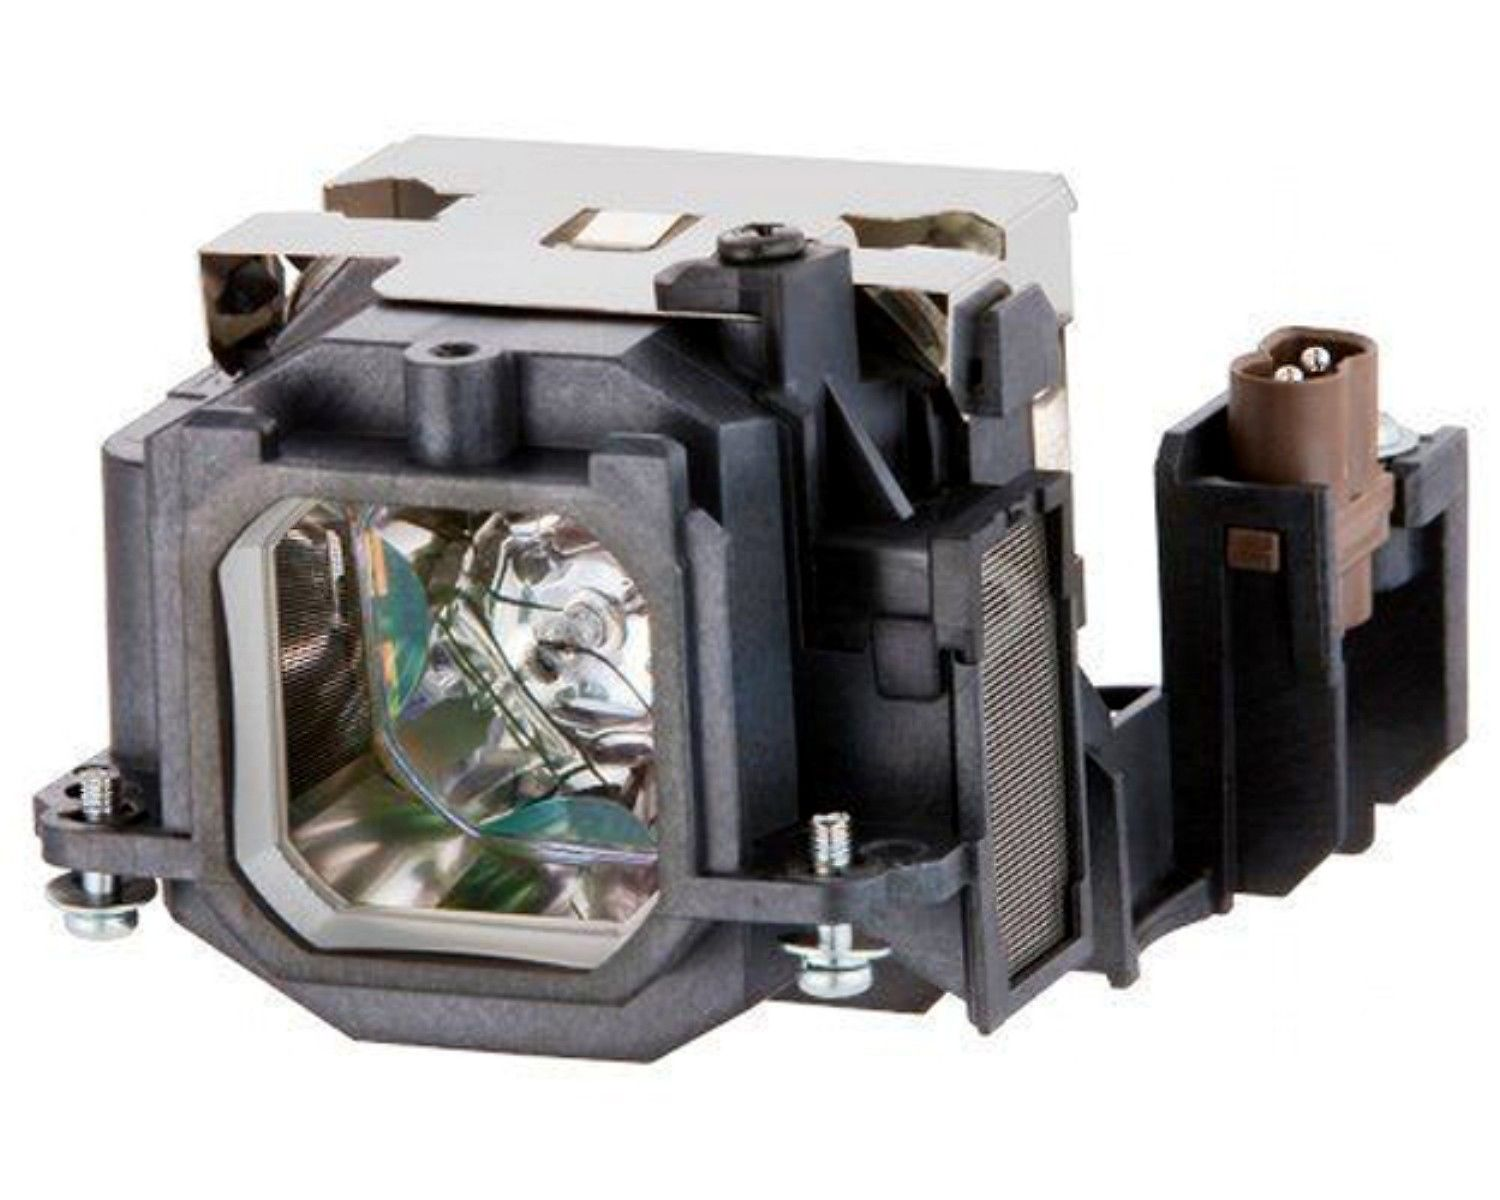 Projector Lamp Bulb ET-LAB2 ETLAB2 for Panasonic PT-LB1 PT-LB2 PT-LB1EA PT-LB2EA PT-ST10 PT-LB3E With Housing projector lamp bulb et la701 etla701 for panasonic pt l711nt pt l711x pt l501e with housing